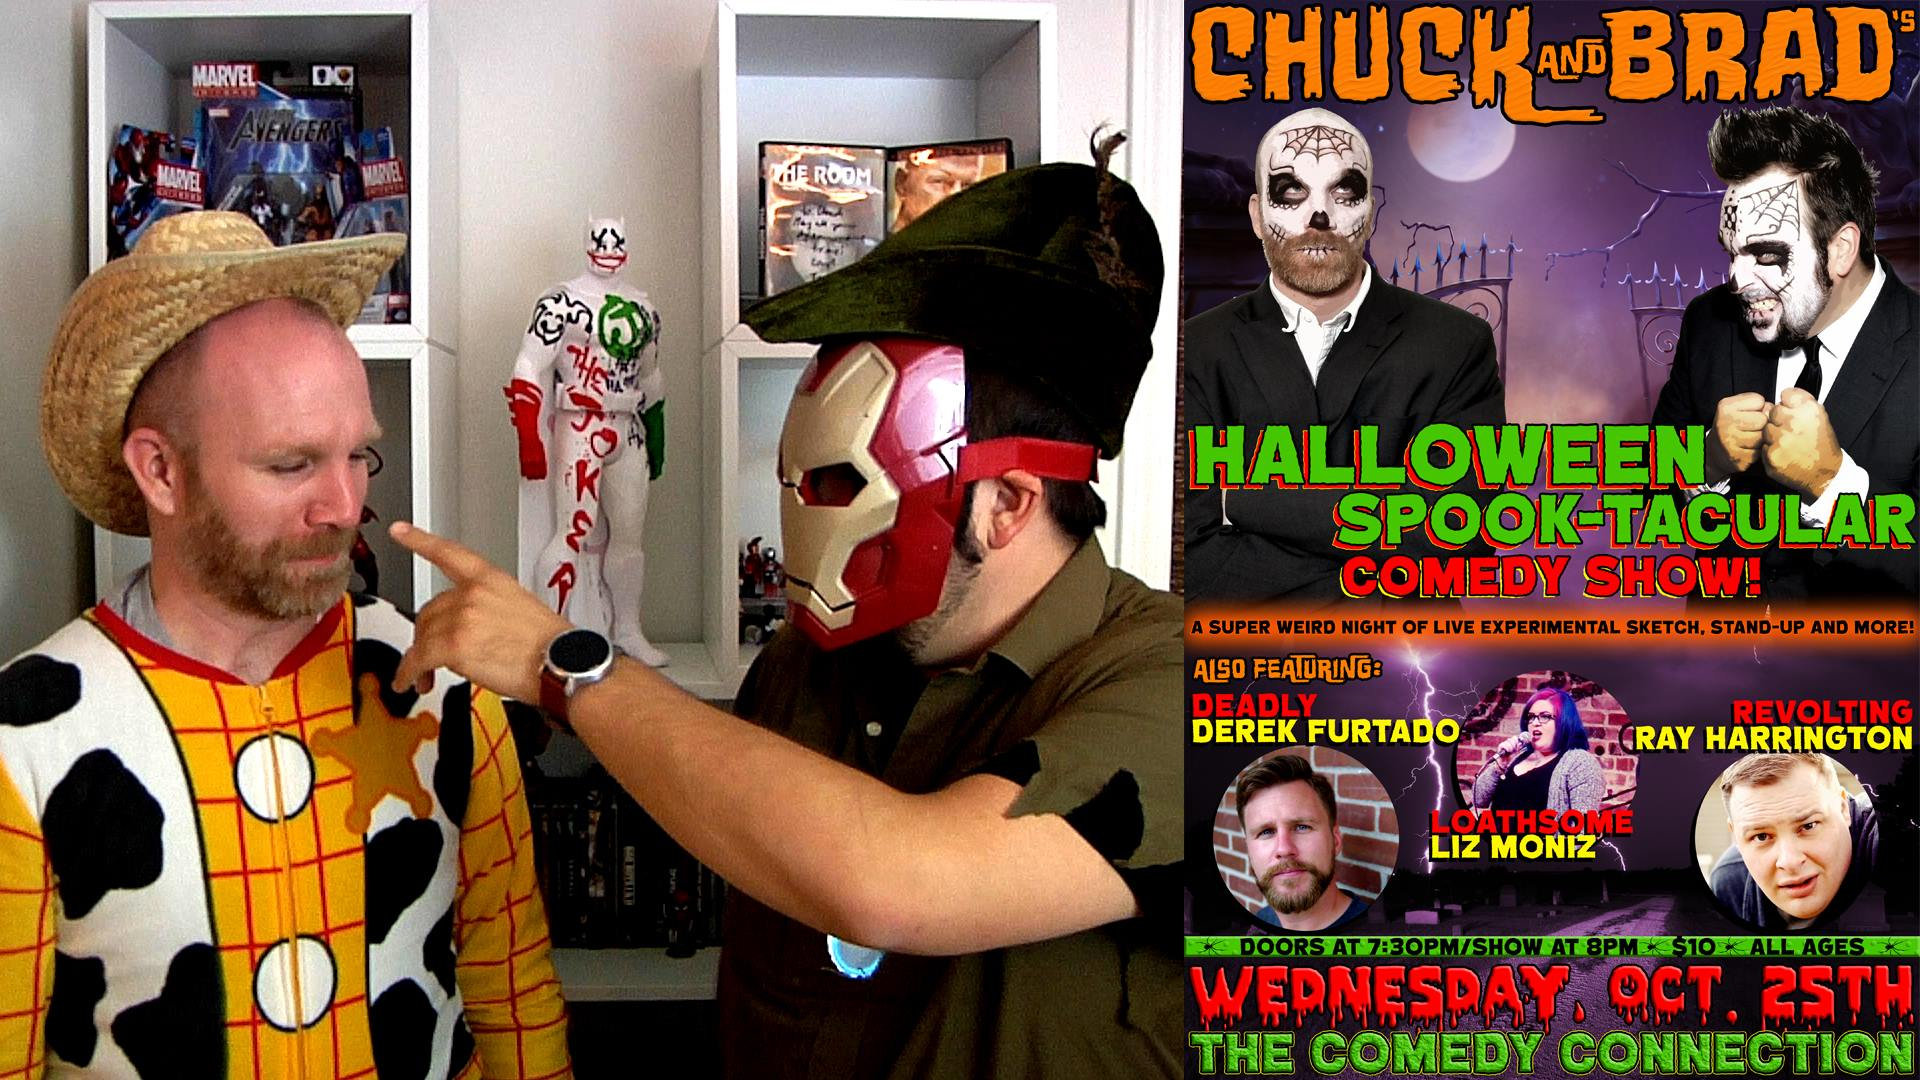 Chuck and Brad's Halloween Spook-tacular Comedy Show!